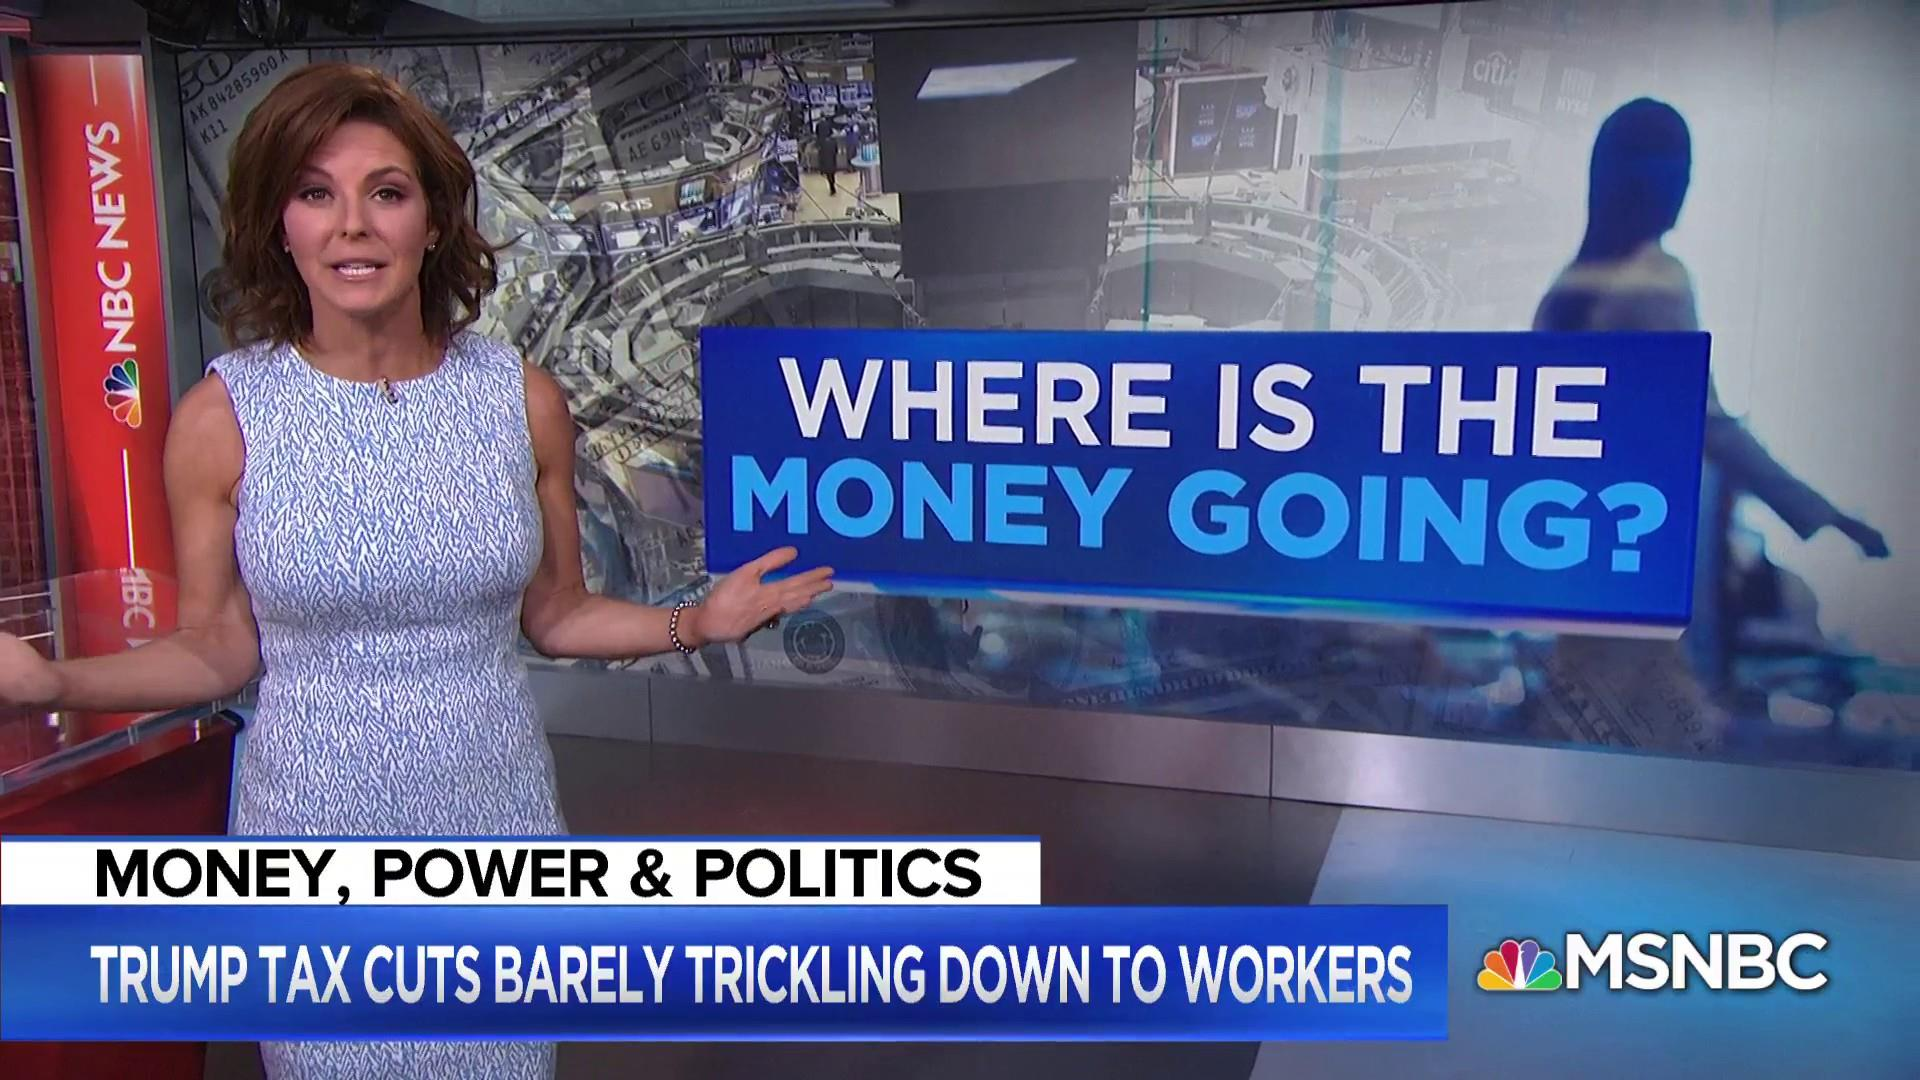 Trump tax cuts barely trickling down to workers, here's why